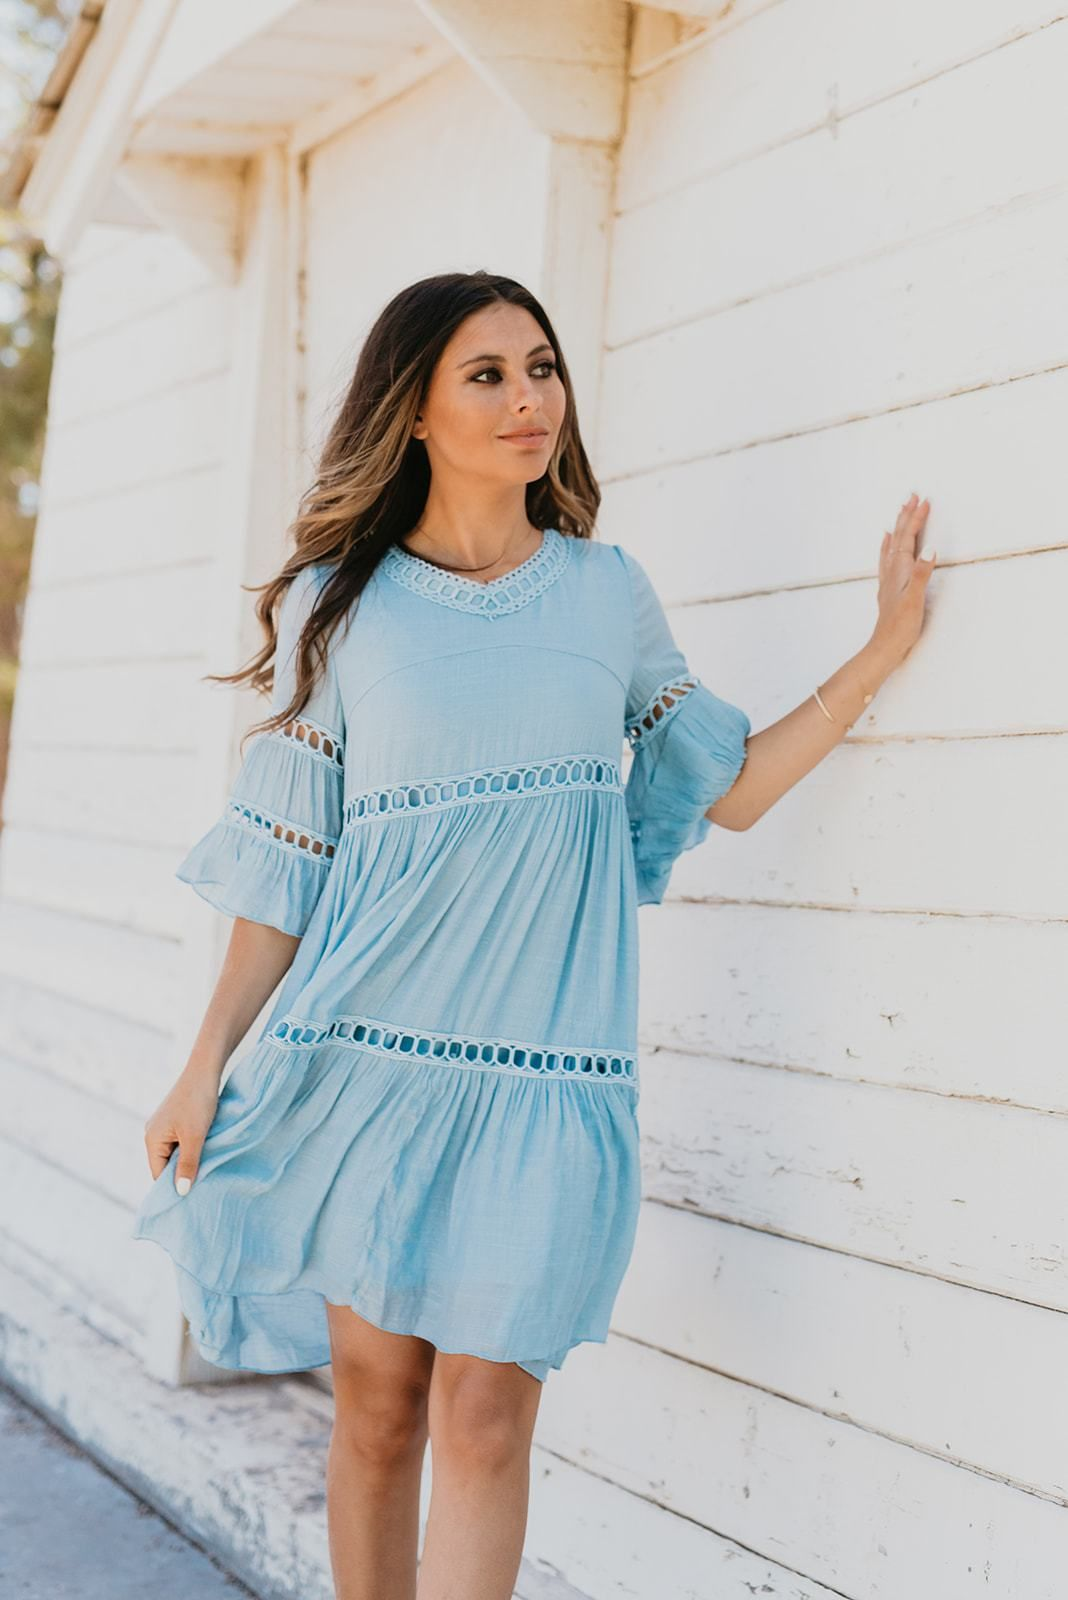 The Cabo Lace Babydoll Dress In Misty Blue Lace Babydoll Dress Blue Babydoll Dress Babydoll Dress [ 1600 x 1068 Pixel ]